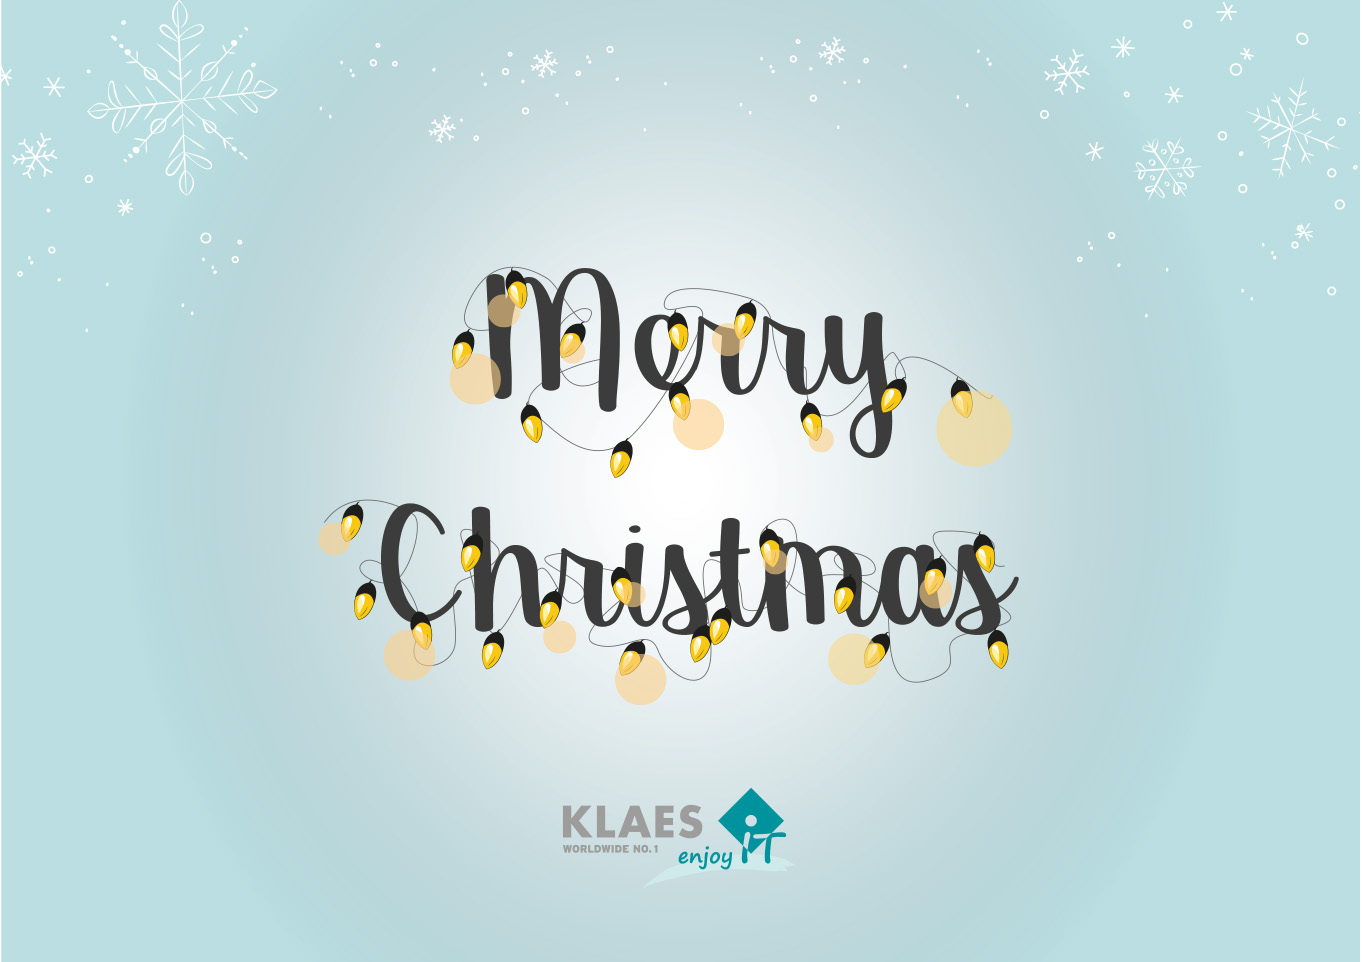 Klaes wishes a Merry Christmas